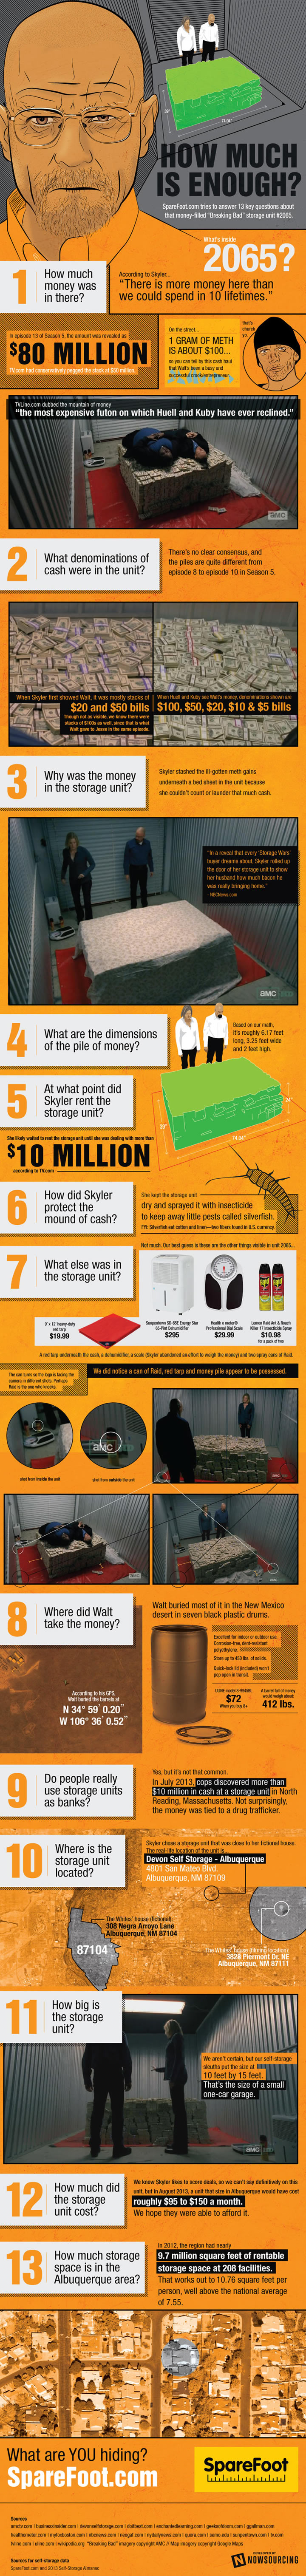 infographie Breaking bad